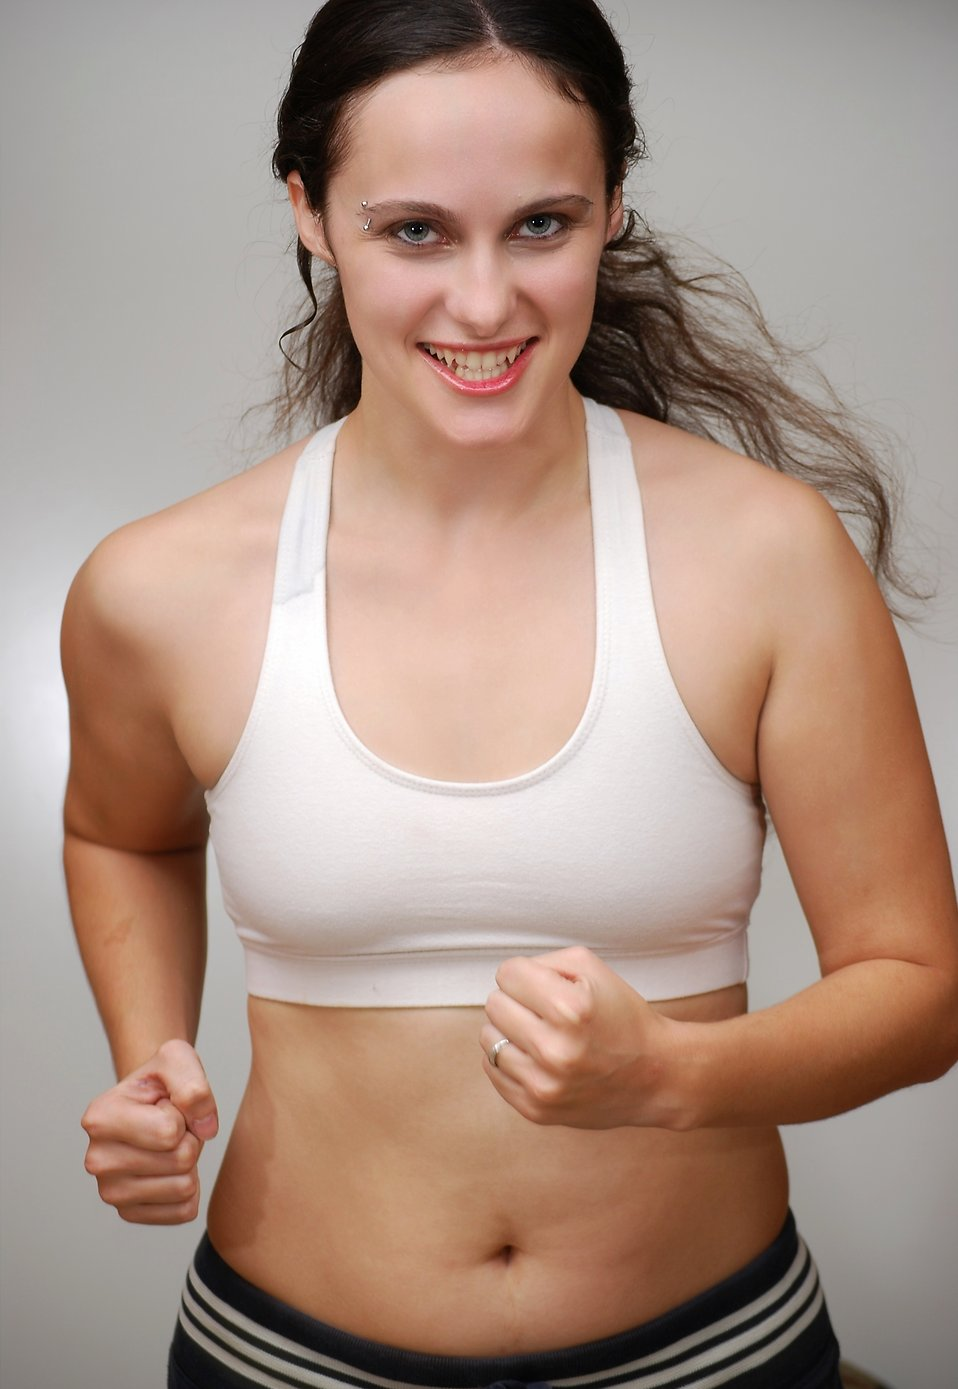 A beautiful young woman exercising : Free Stock Photo